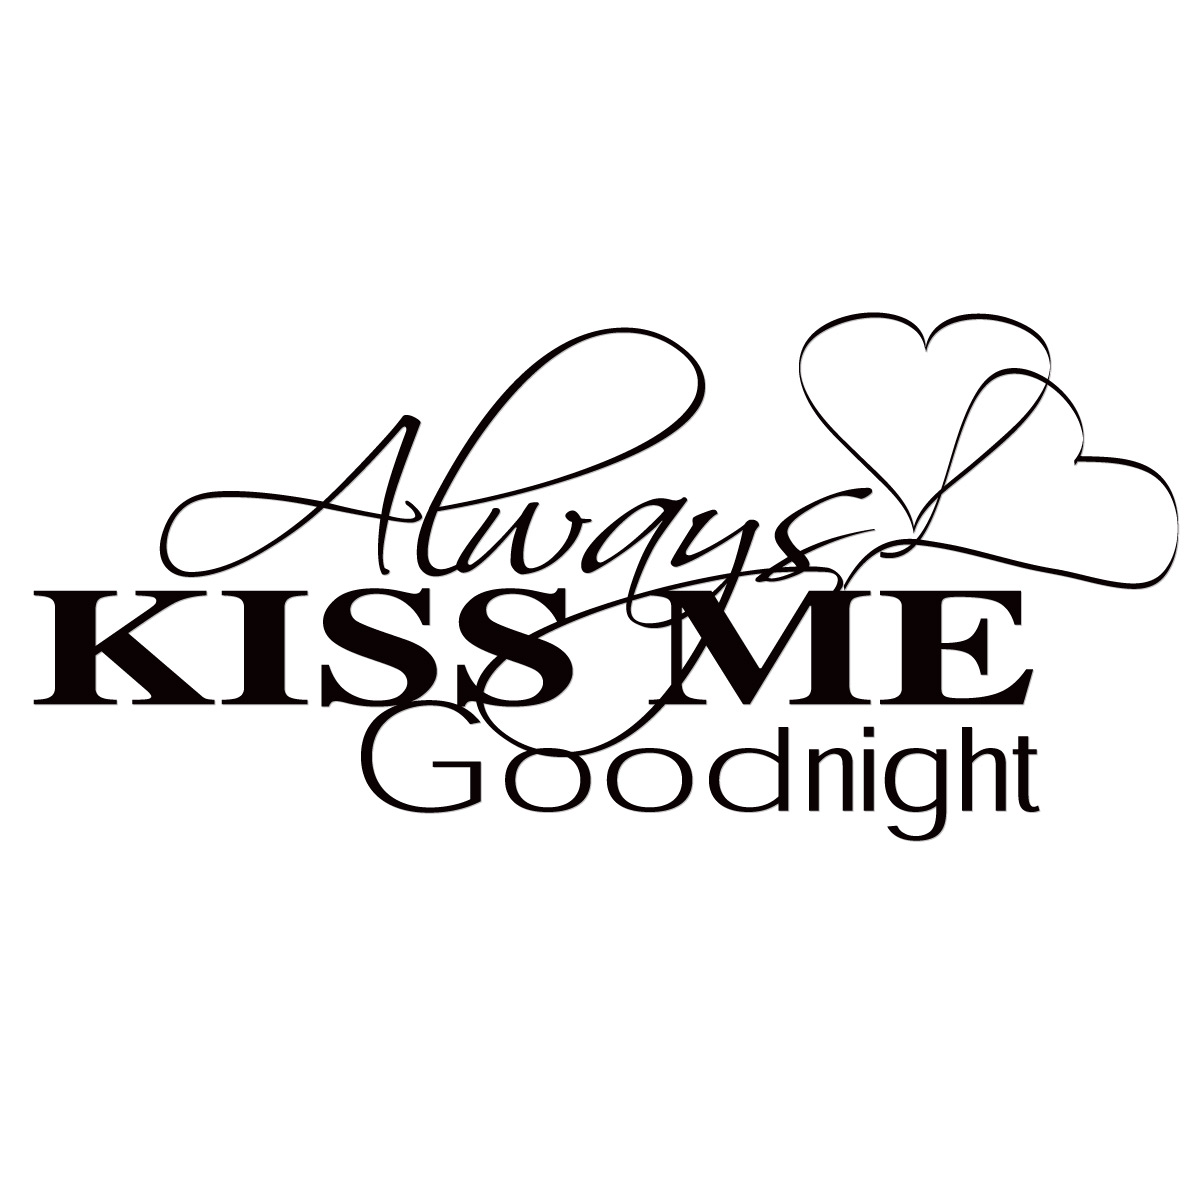 Details About Always Kiss Me Goodnight Bedroom Vinyl Wall Lettering 1200x1200